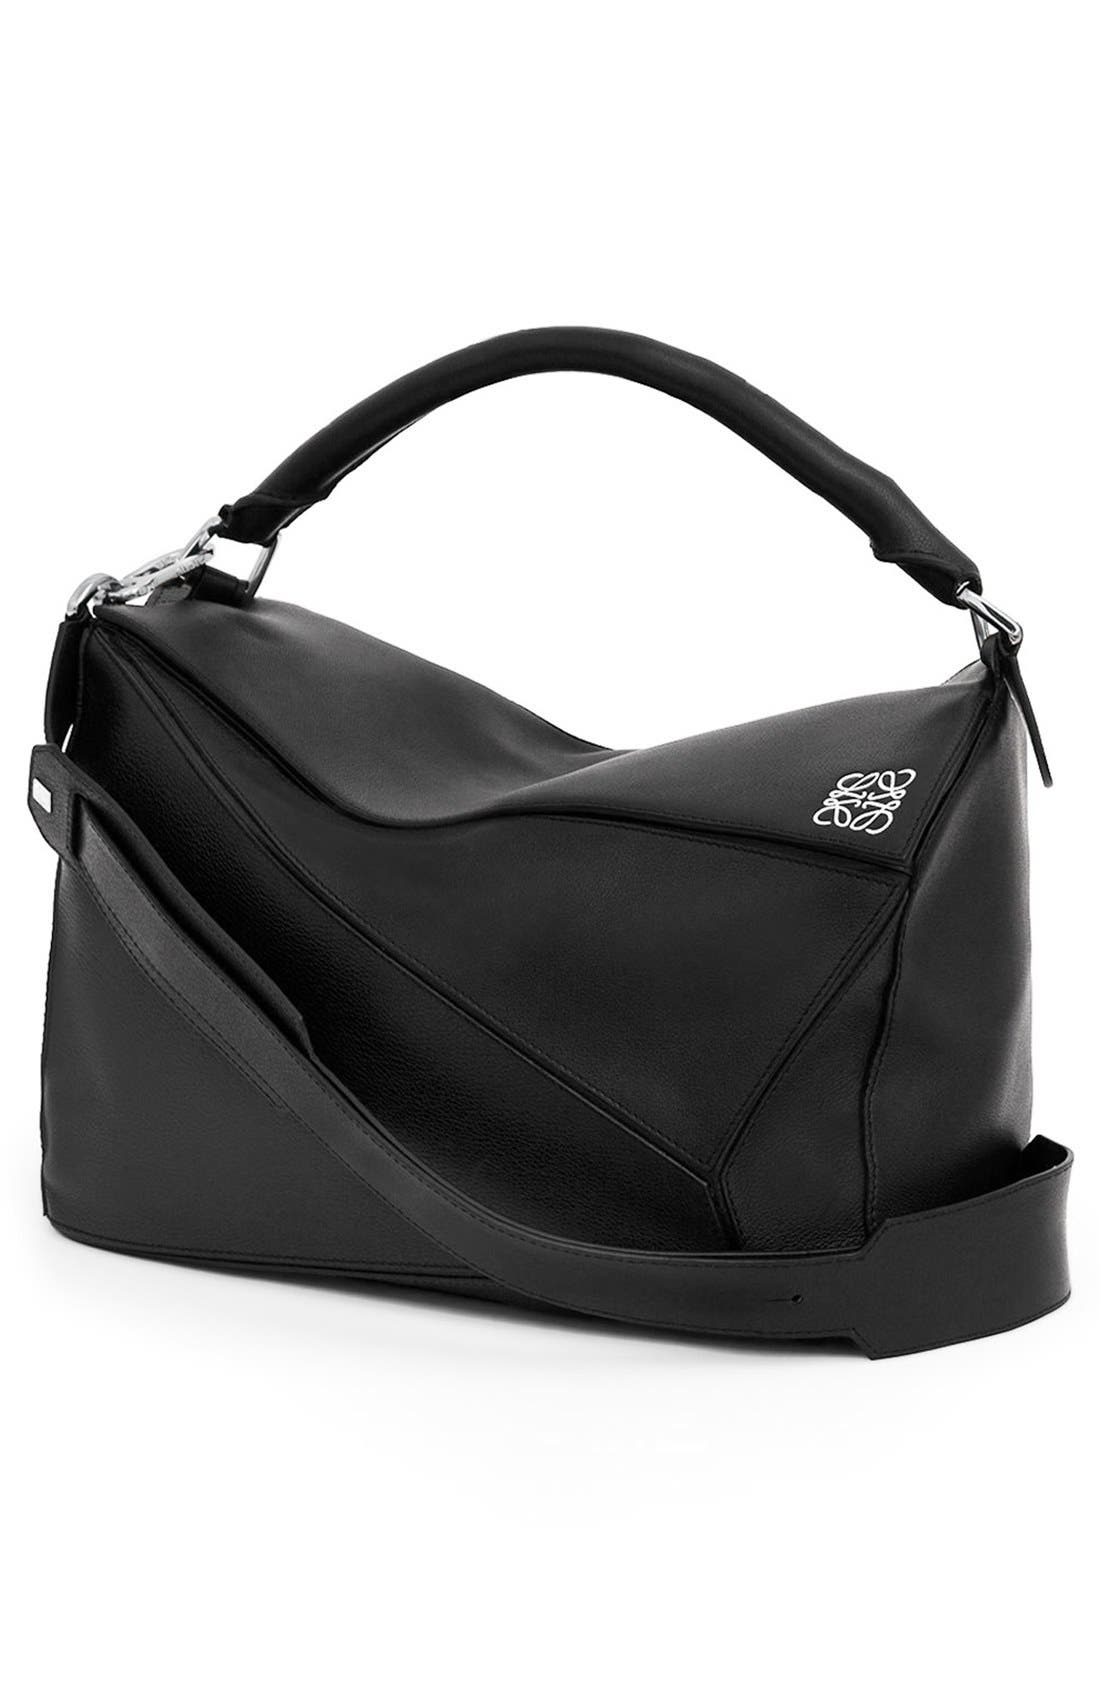 Loewe 'Large Puzzle' Calfskin Leather Bag